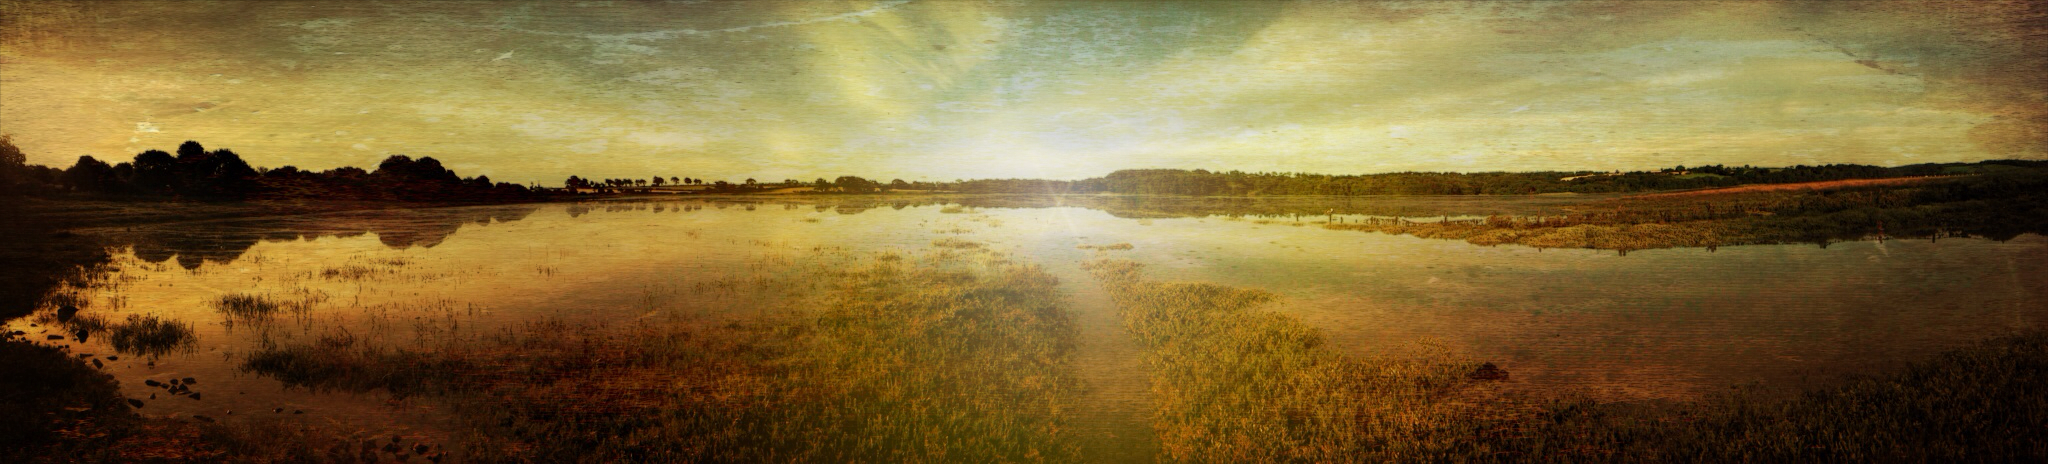 Andrew Chambers ~ Carew Wales